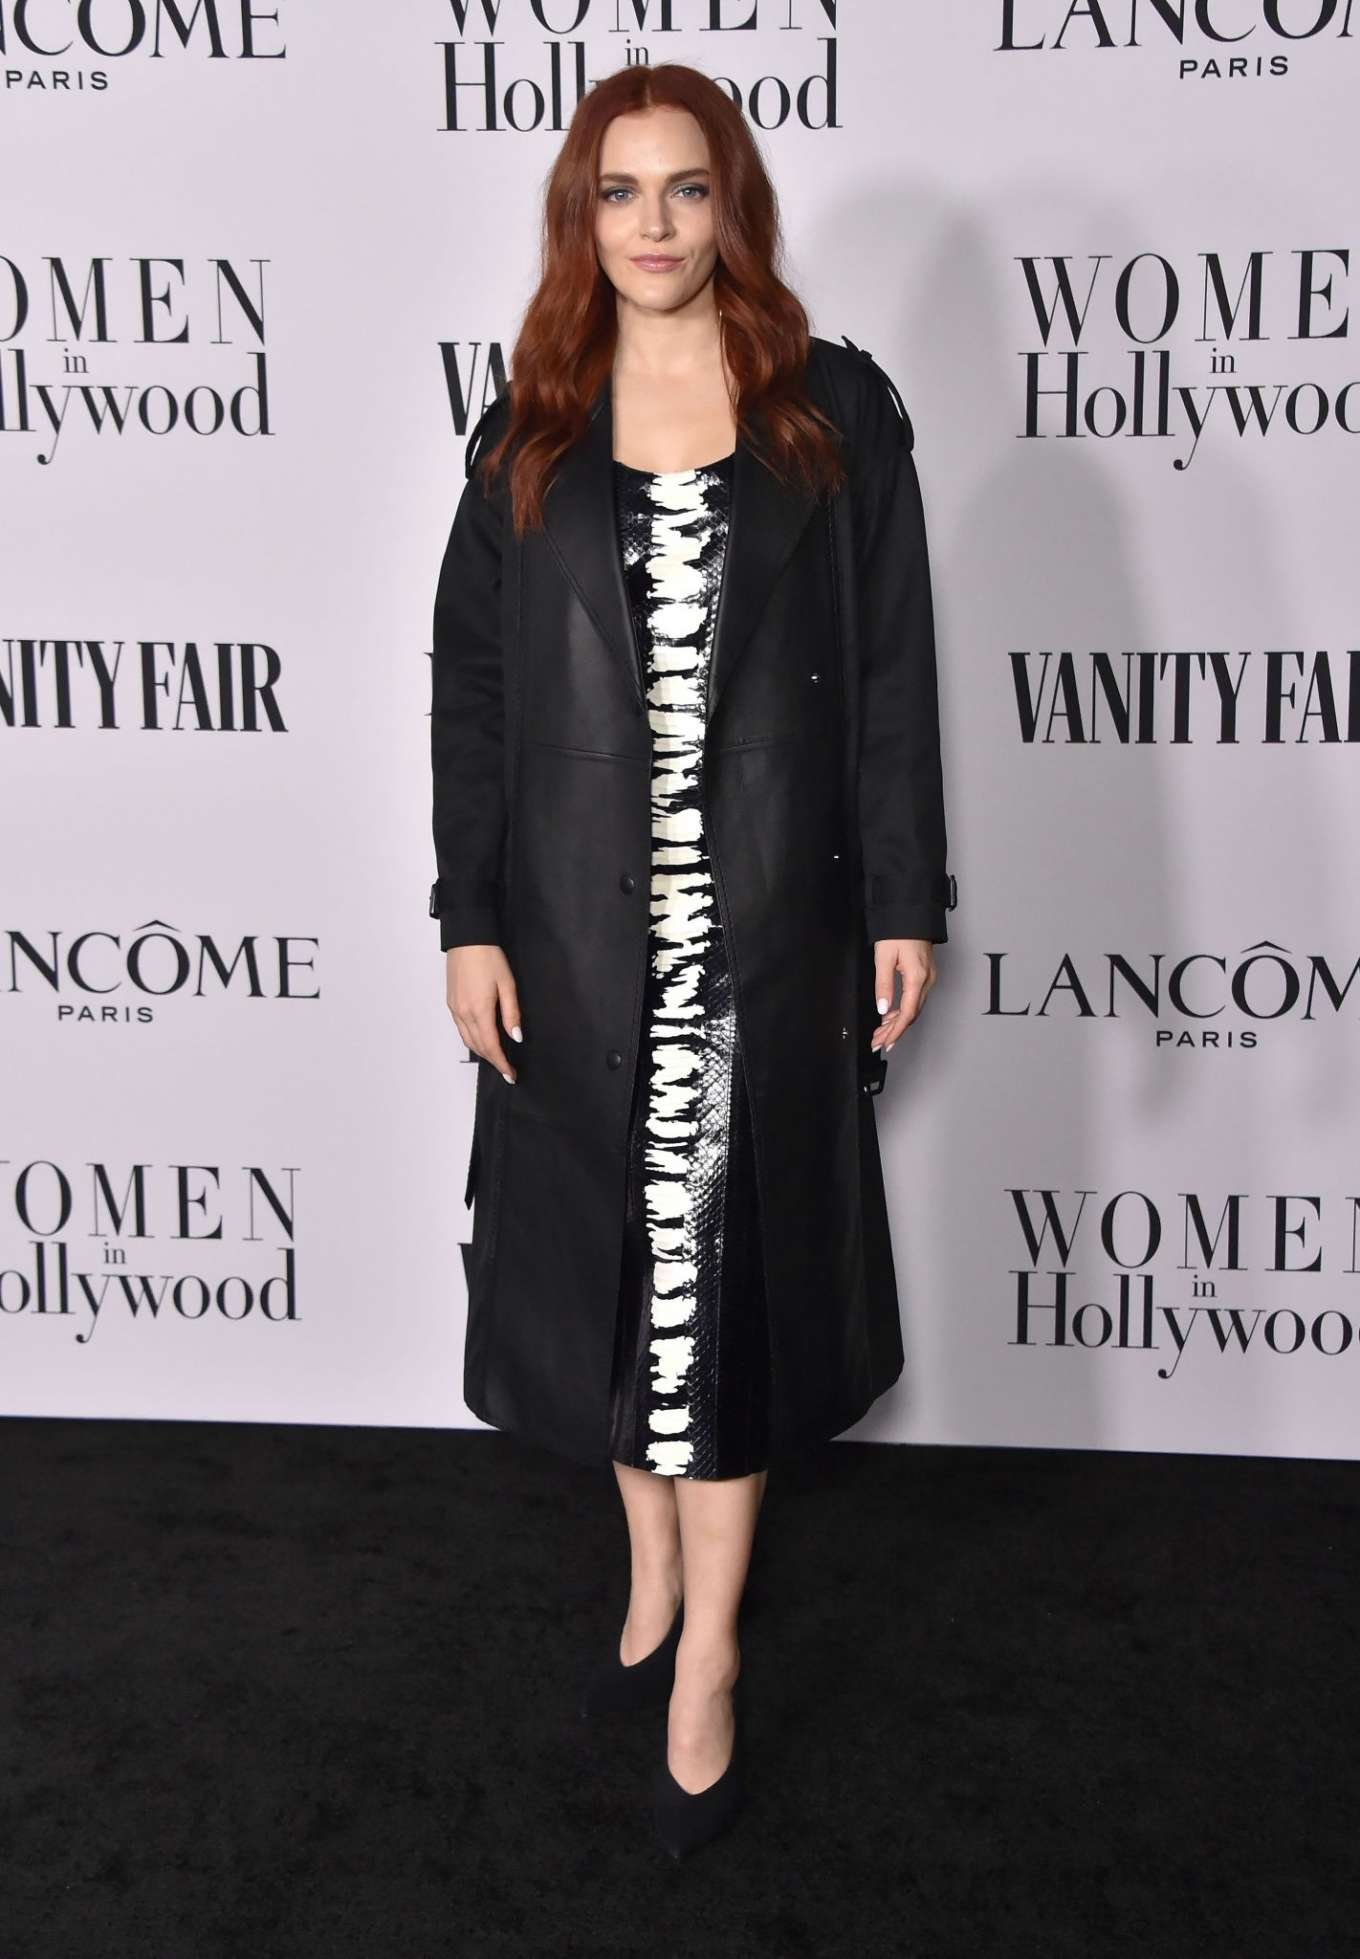 Madeline Brewer 2020 : Madeline Brewer – Vanity Fair and Lancome Women In Hollywood Celebration-02